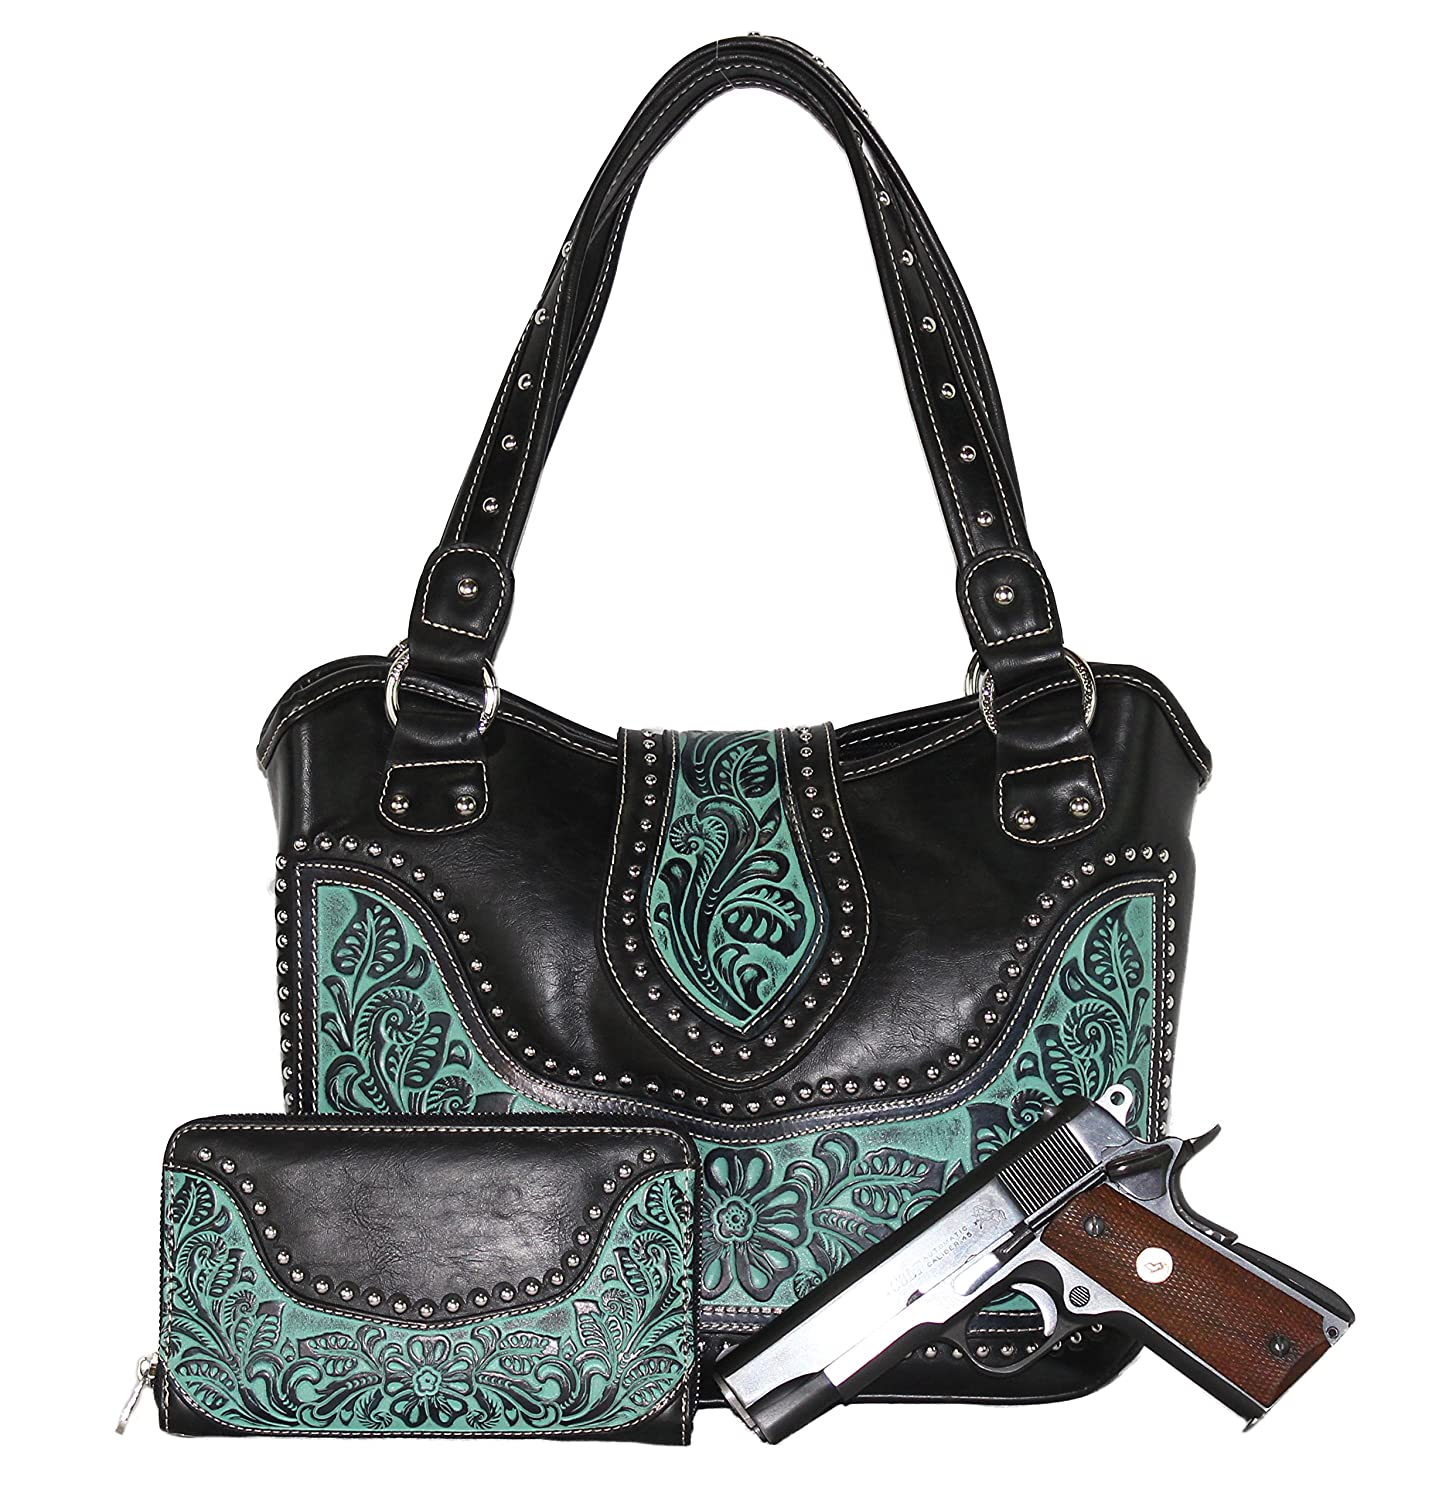 Concealed Carry Purse and Wallet - CCW Tooled Gun Purse with Matching Wallet by Montana West